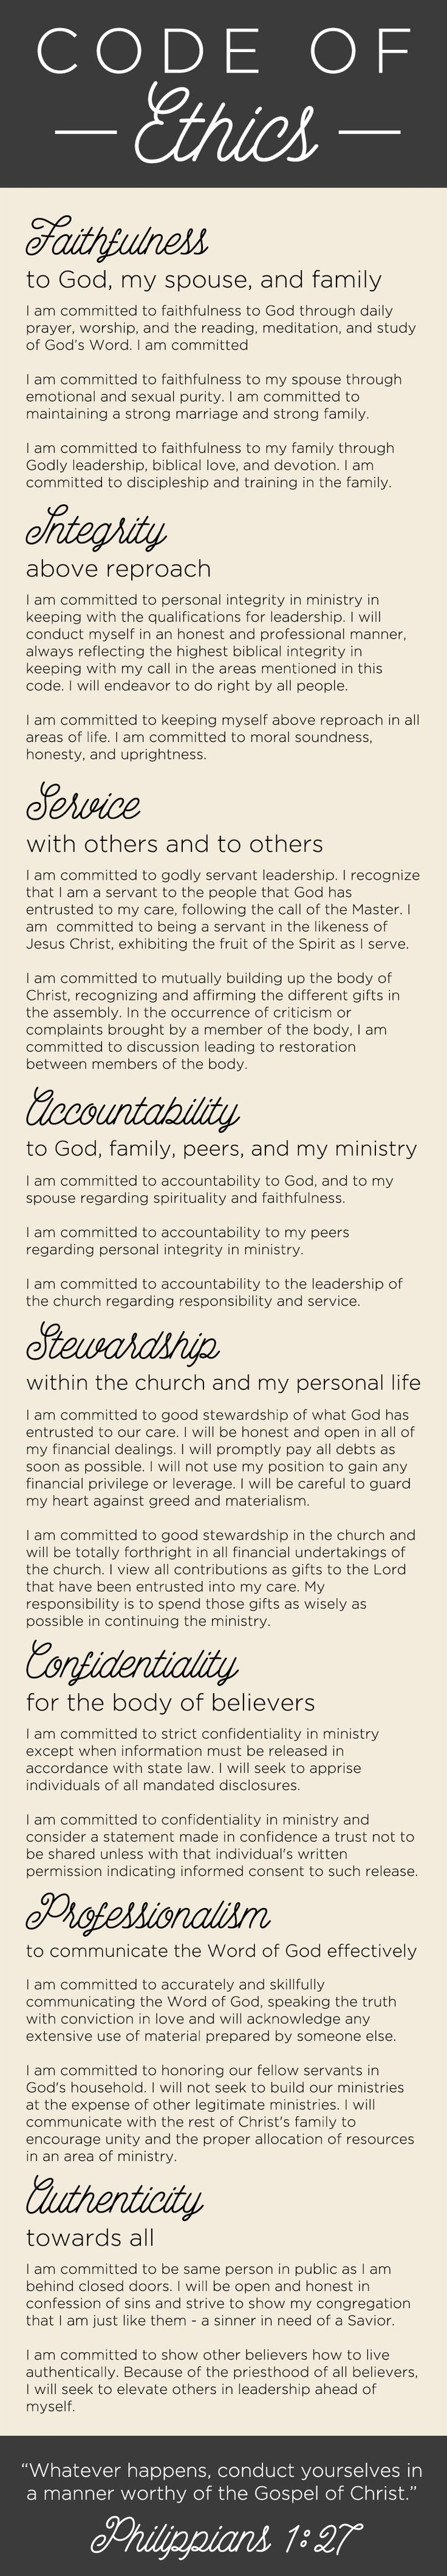 A Pastor's Code of Ethics